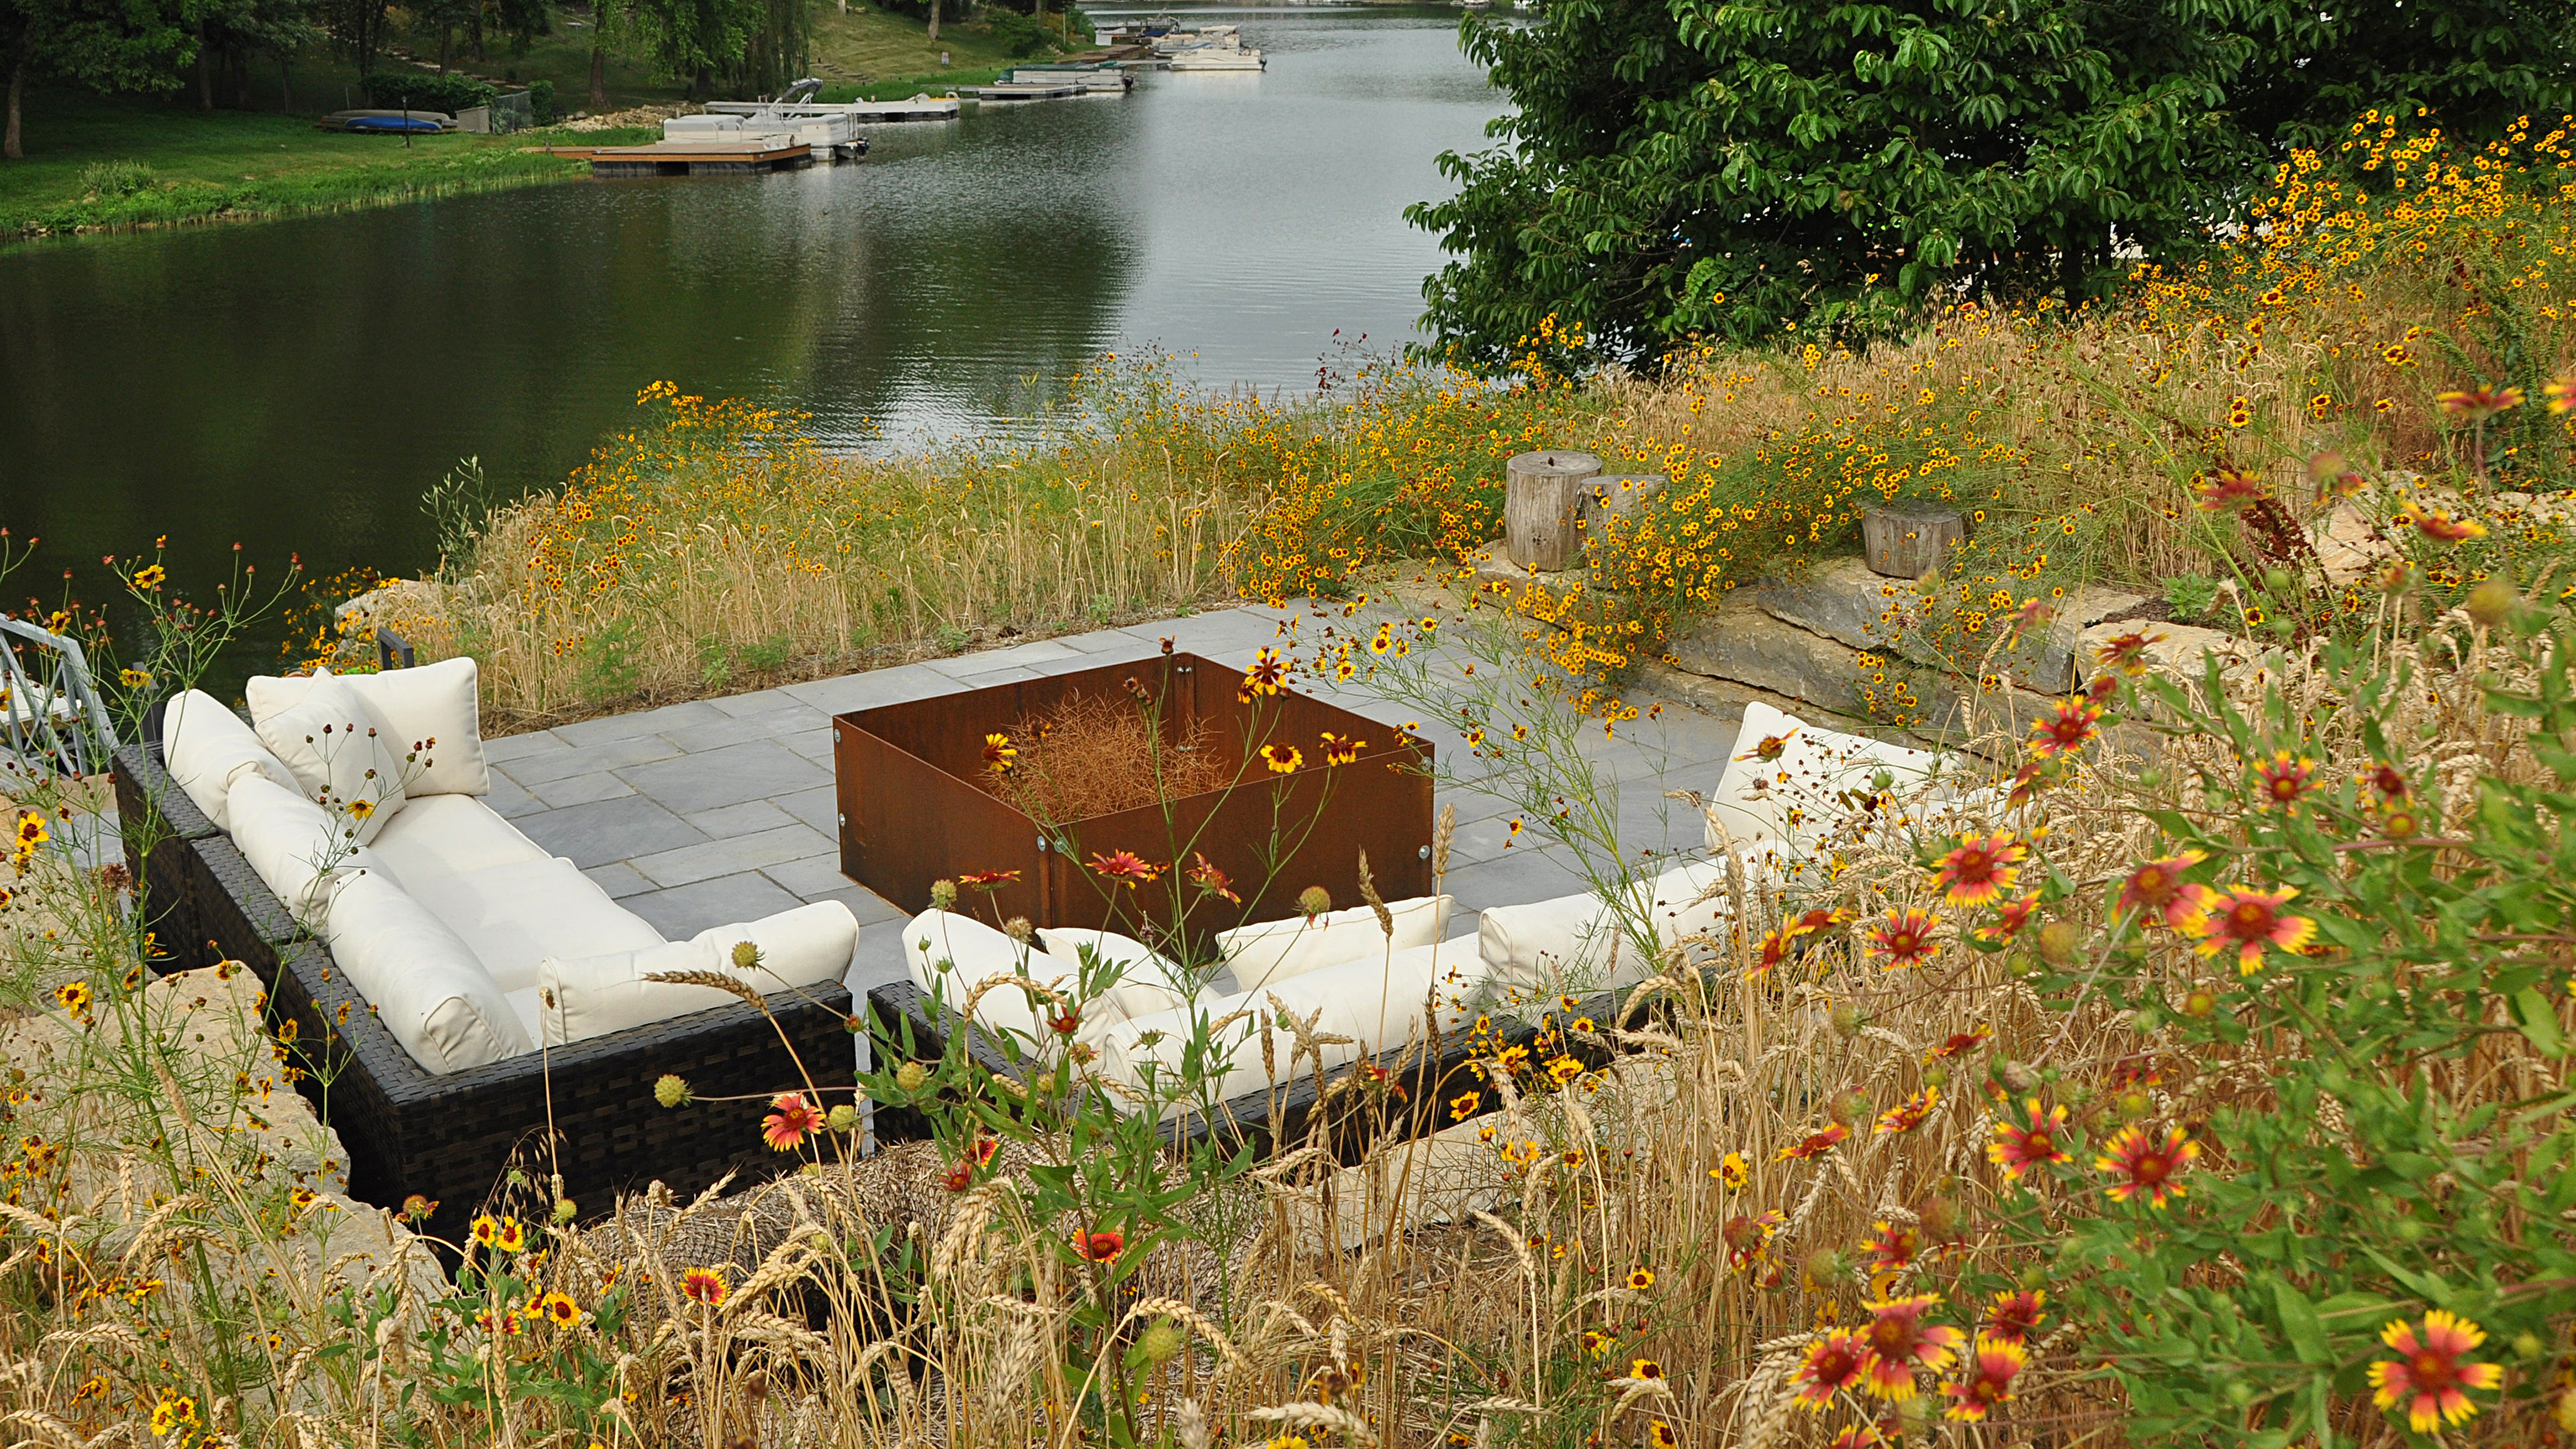 There are fire pit designs to fit any environment. Design by Dan Nelson. Installed by Embassy Landscape Group.